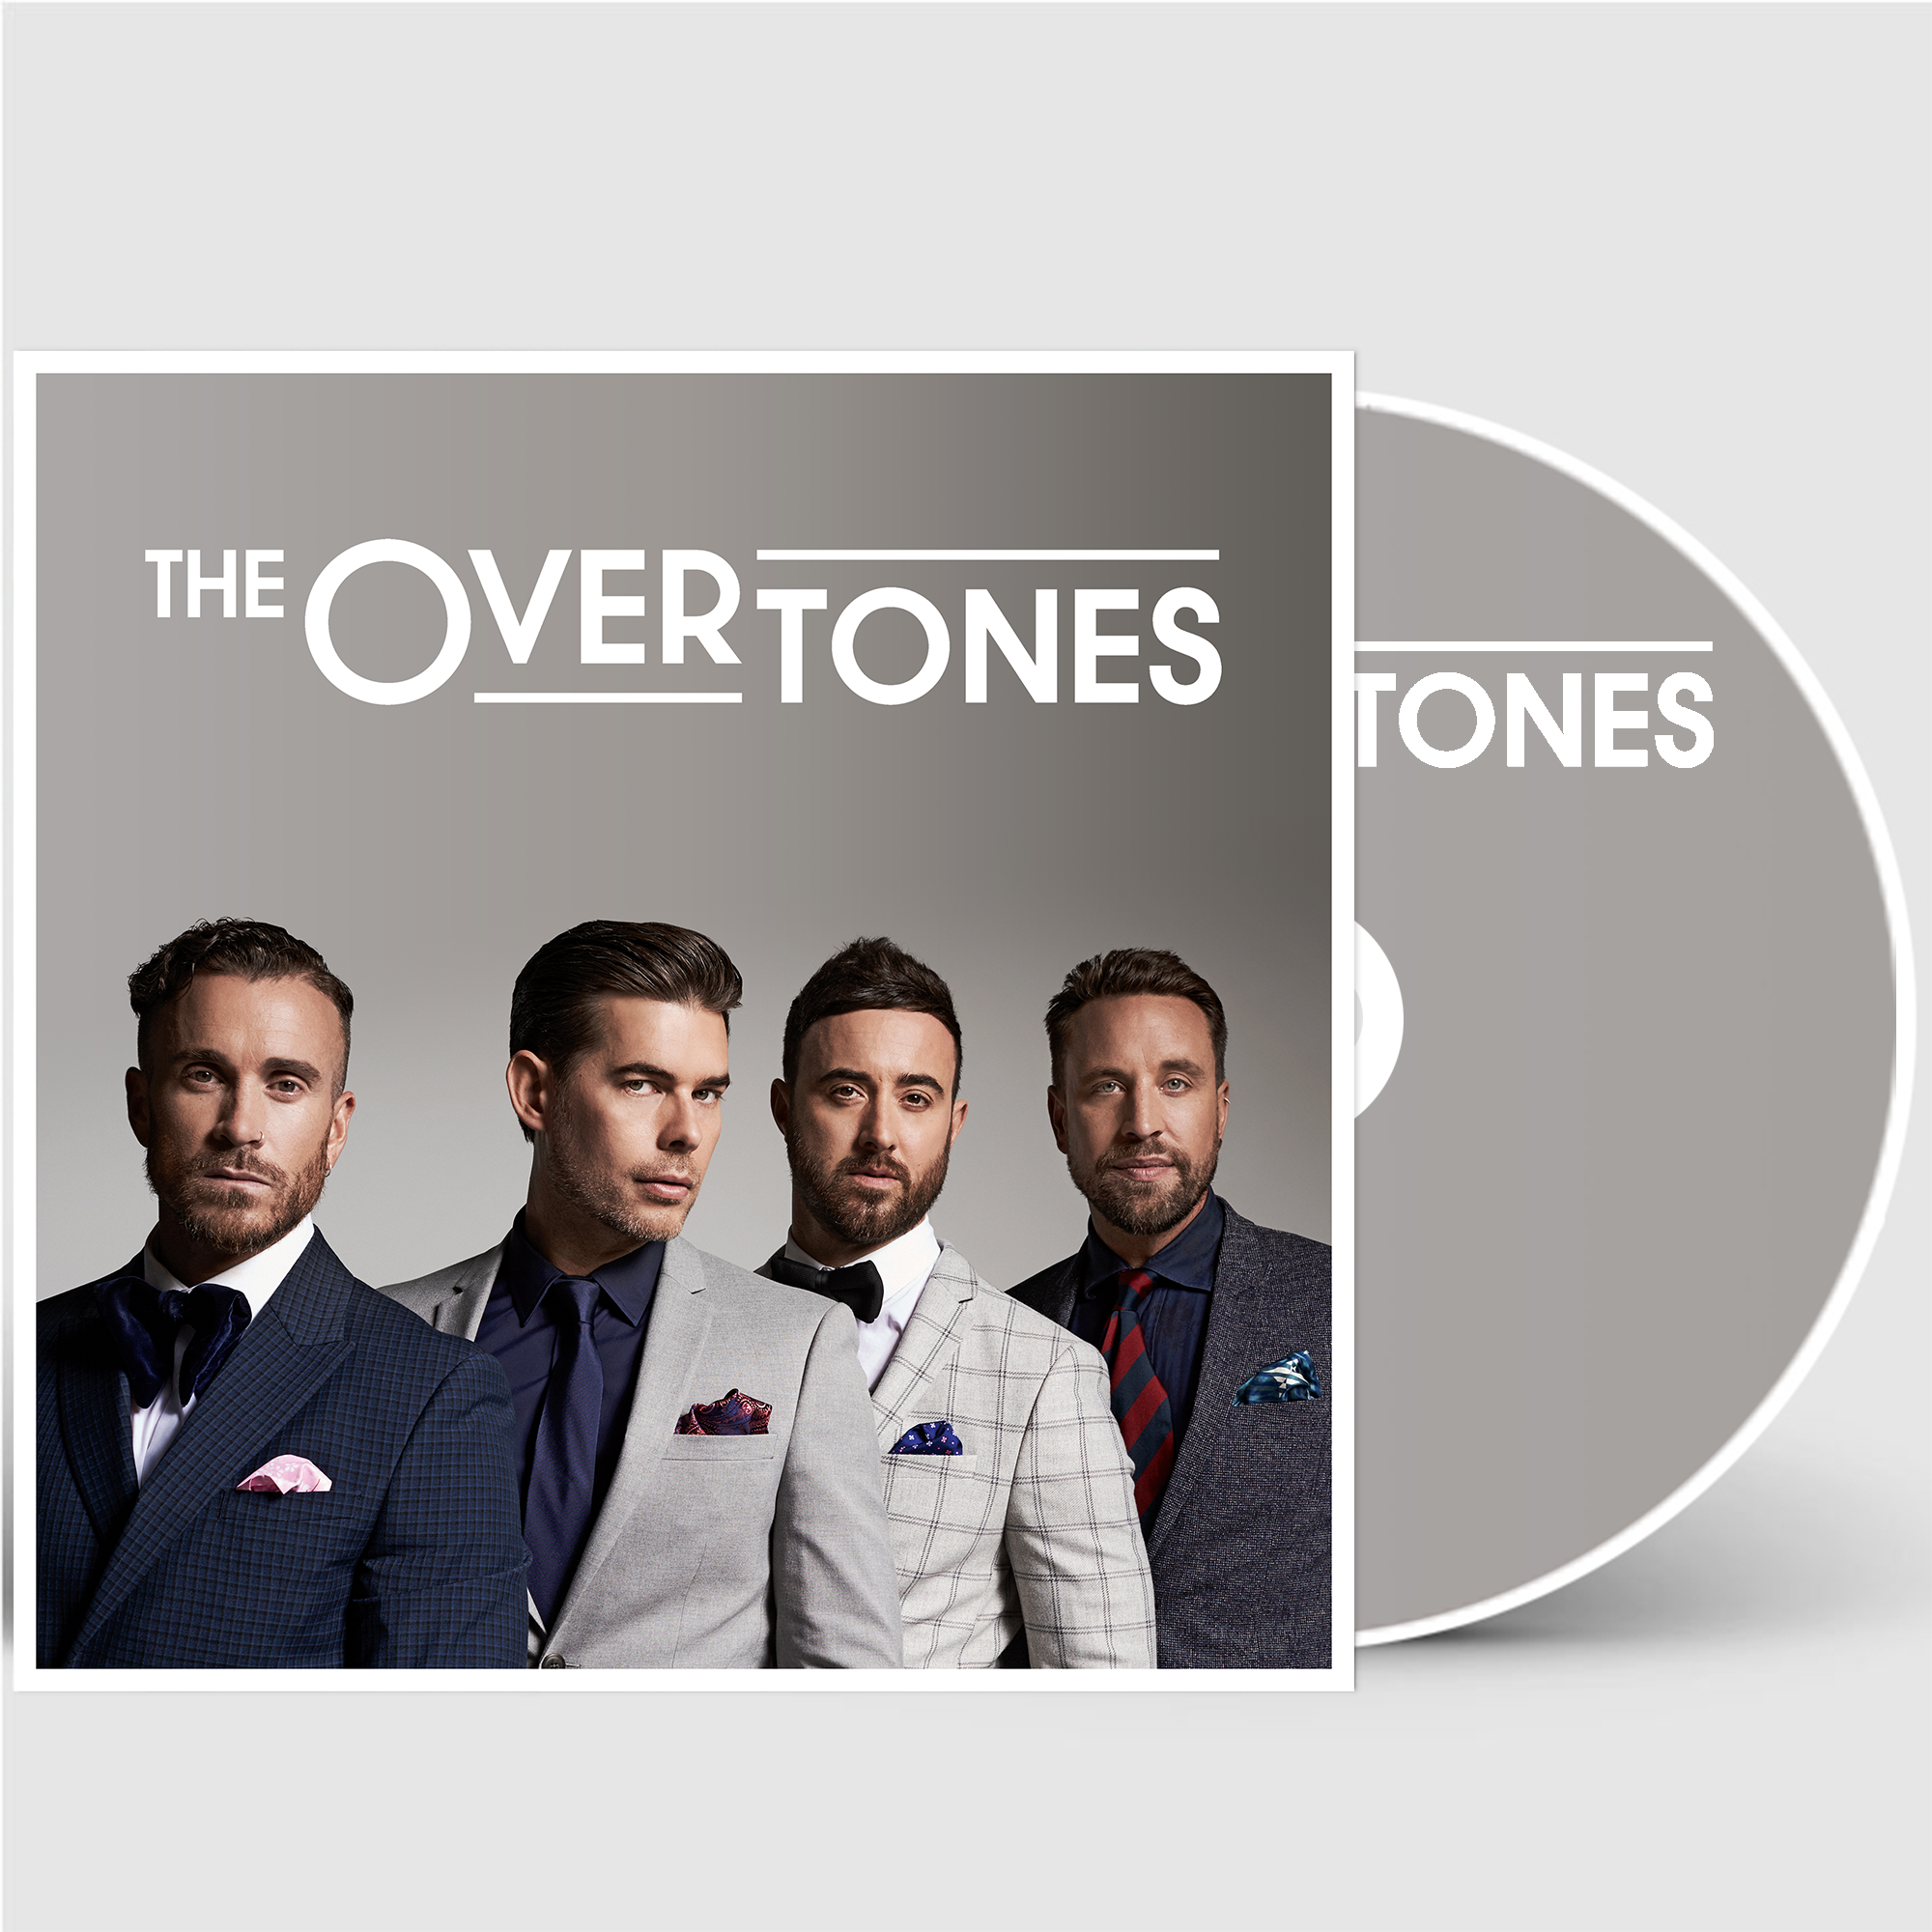 The Overtones (Signed CD) - The Overtones